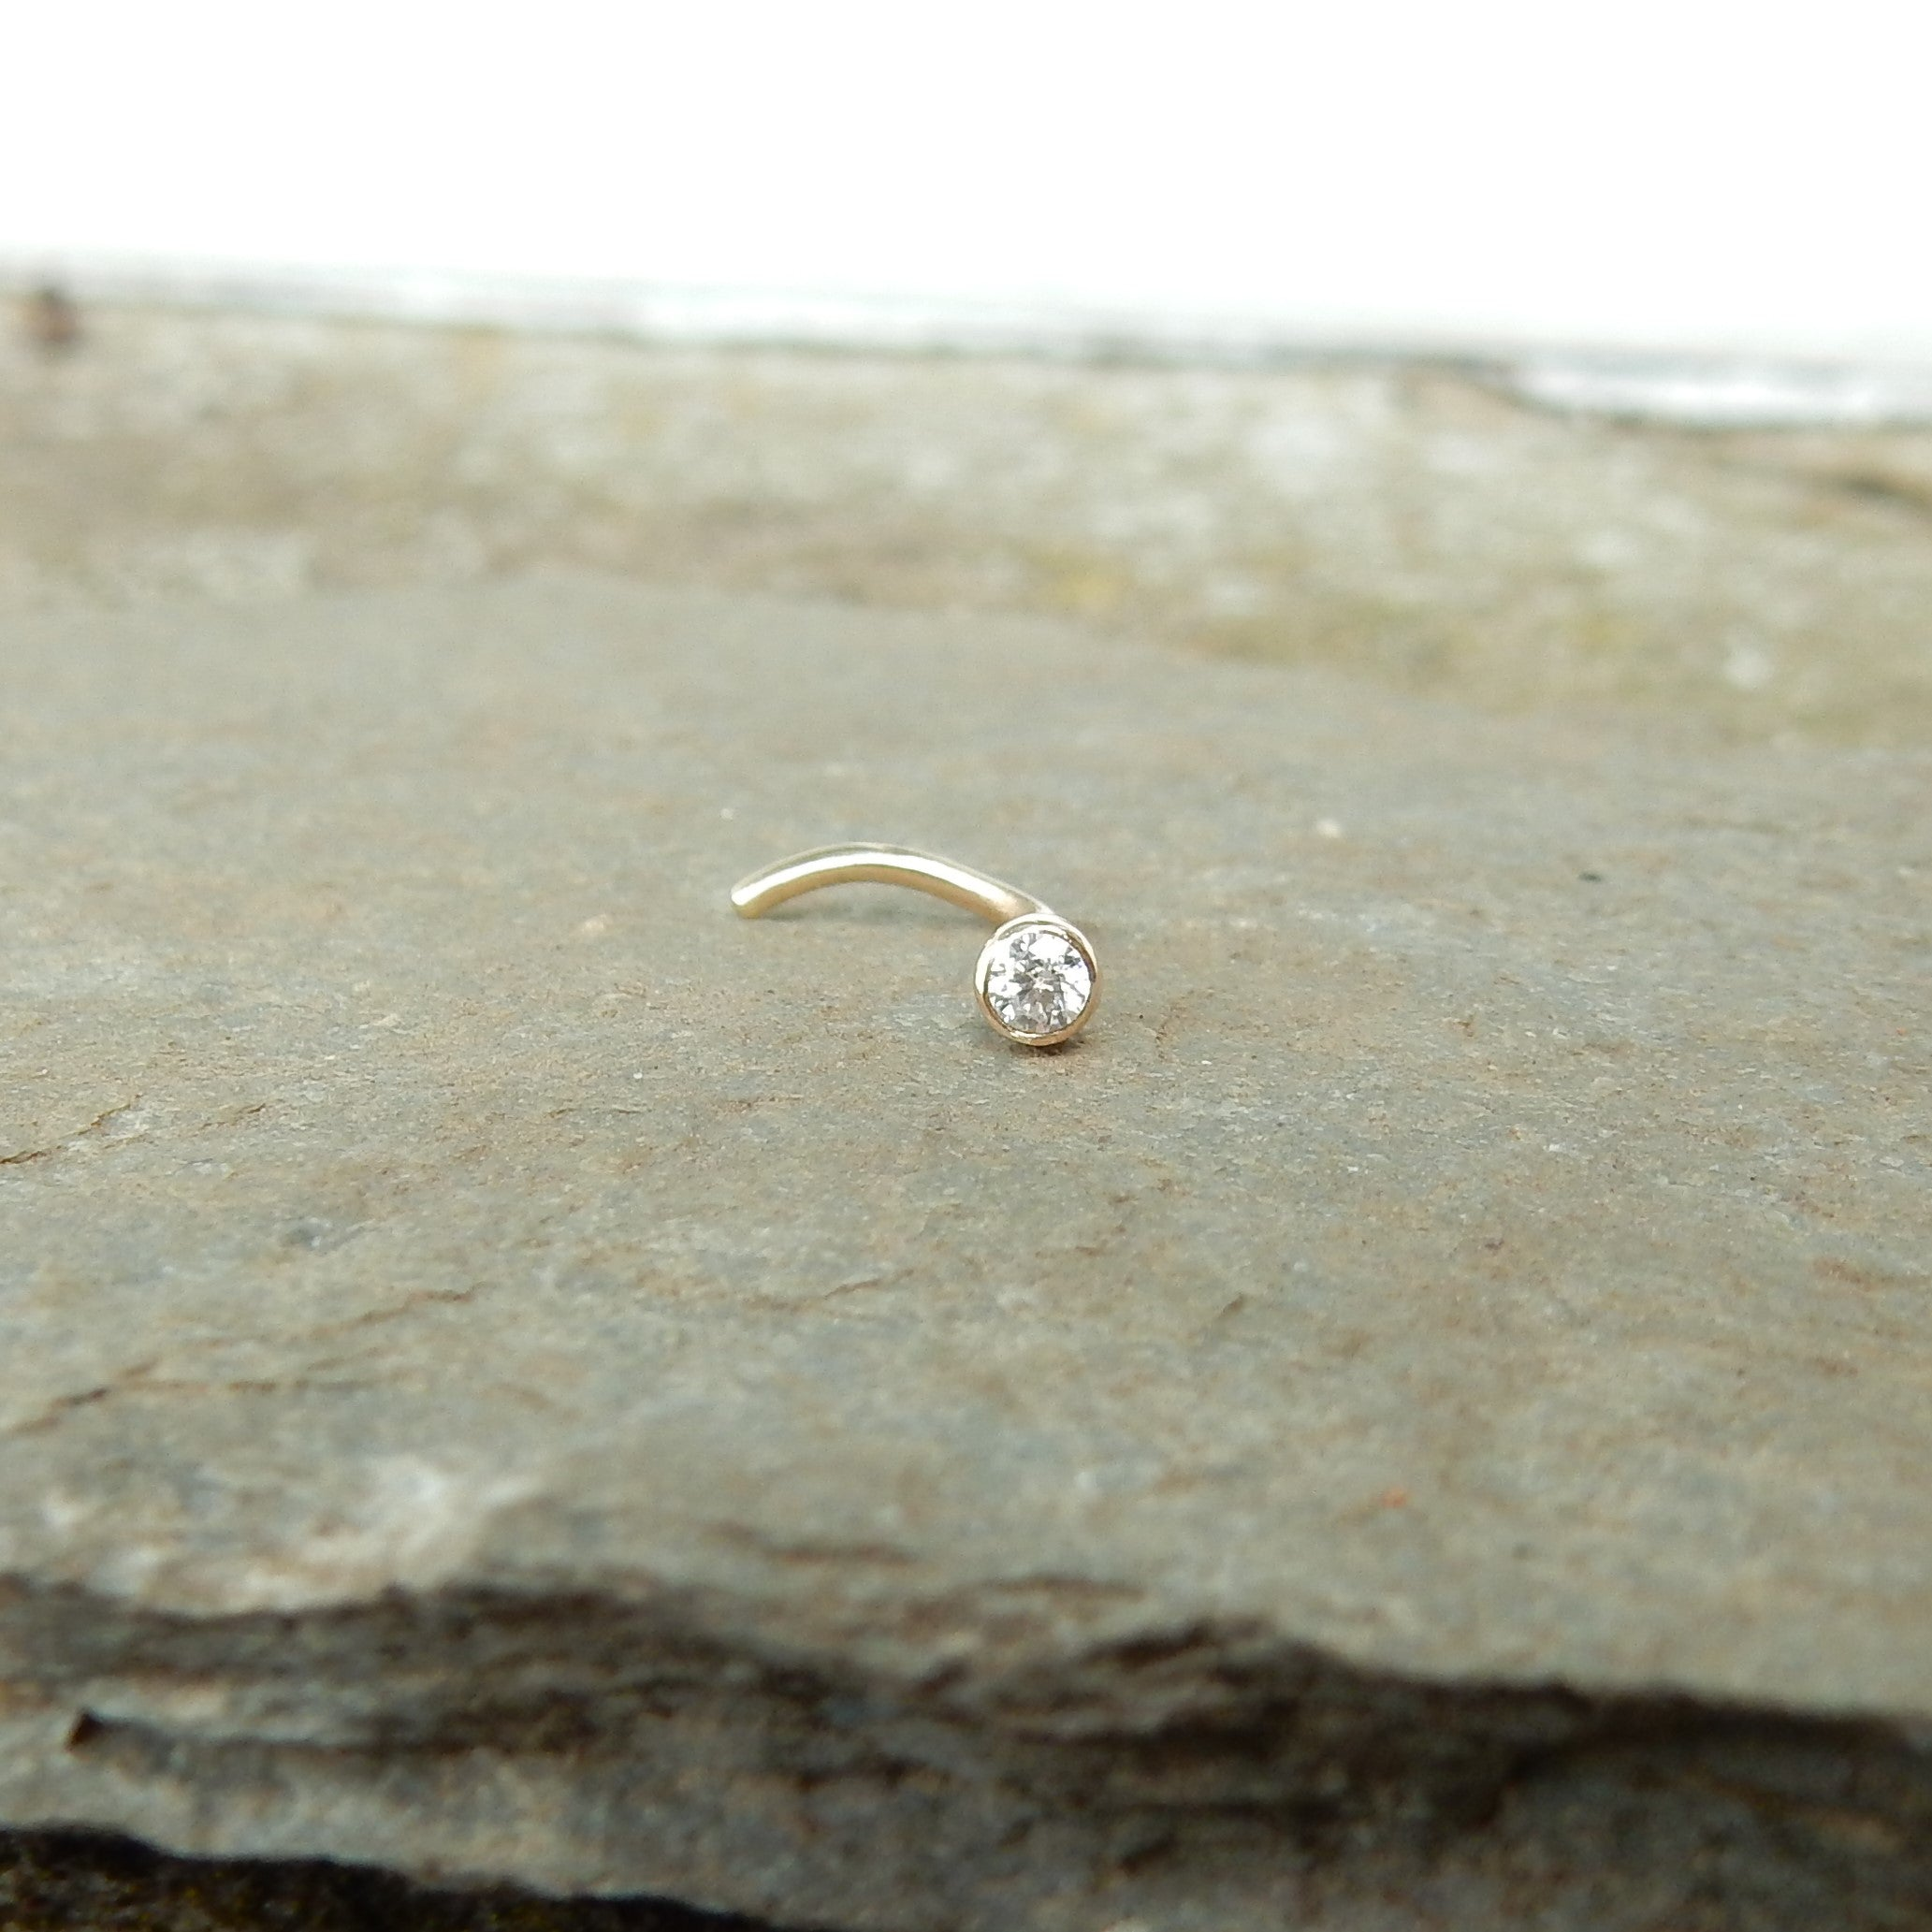 9ct gold nose stud with gemstone